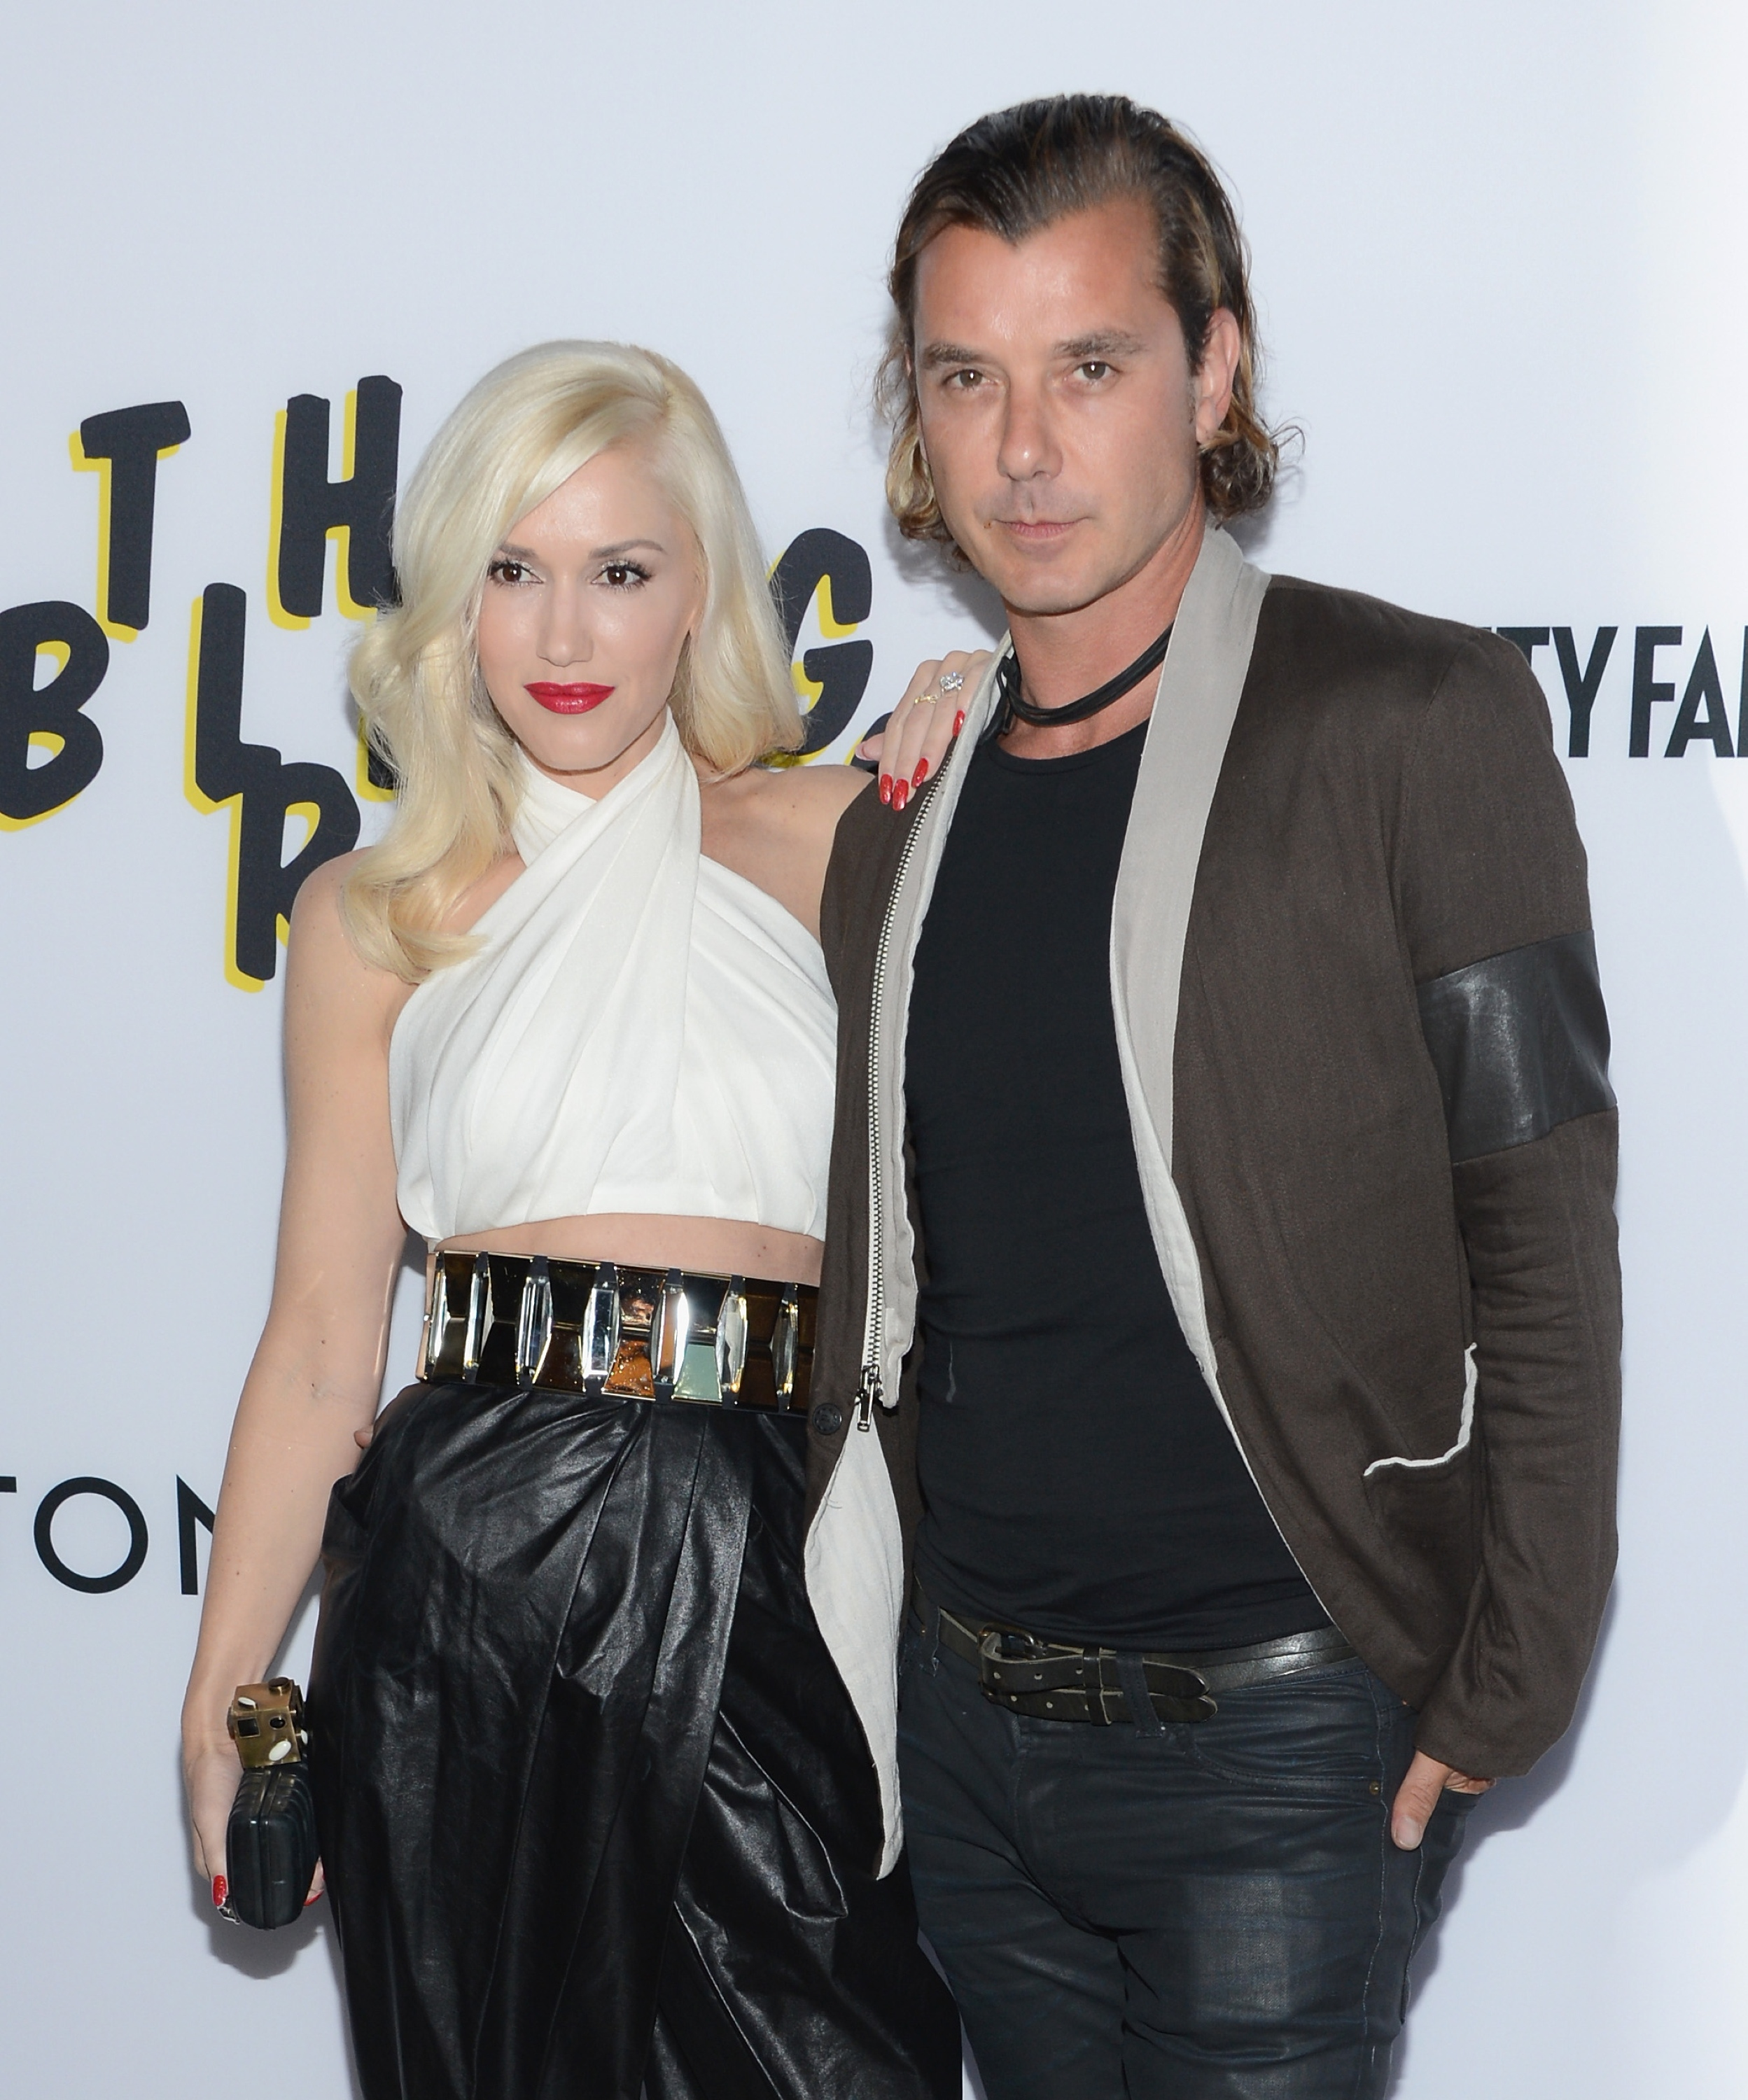 Gwen Stefani and Gavin Rossdale (Getty Images)